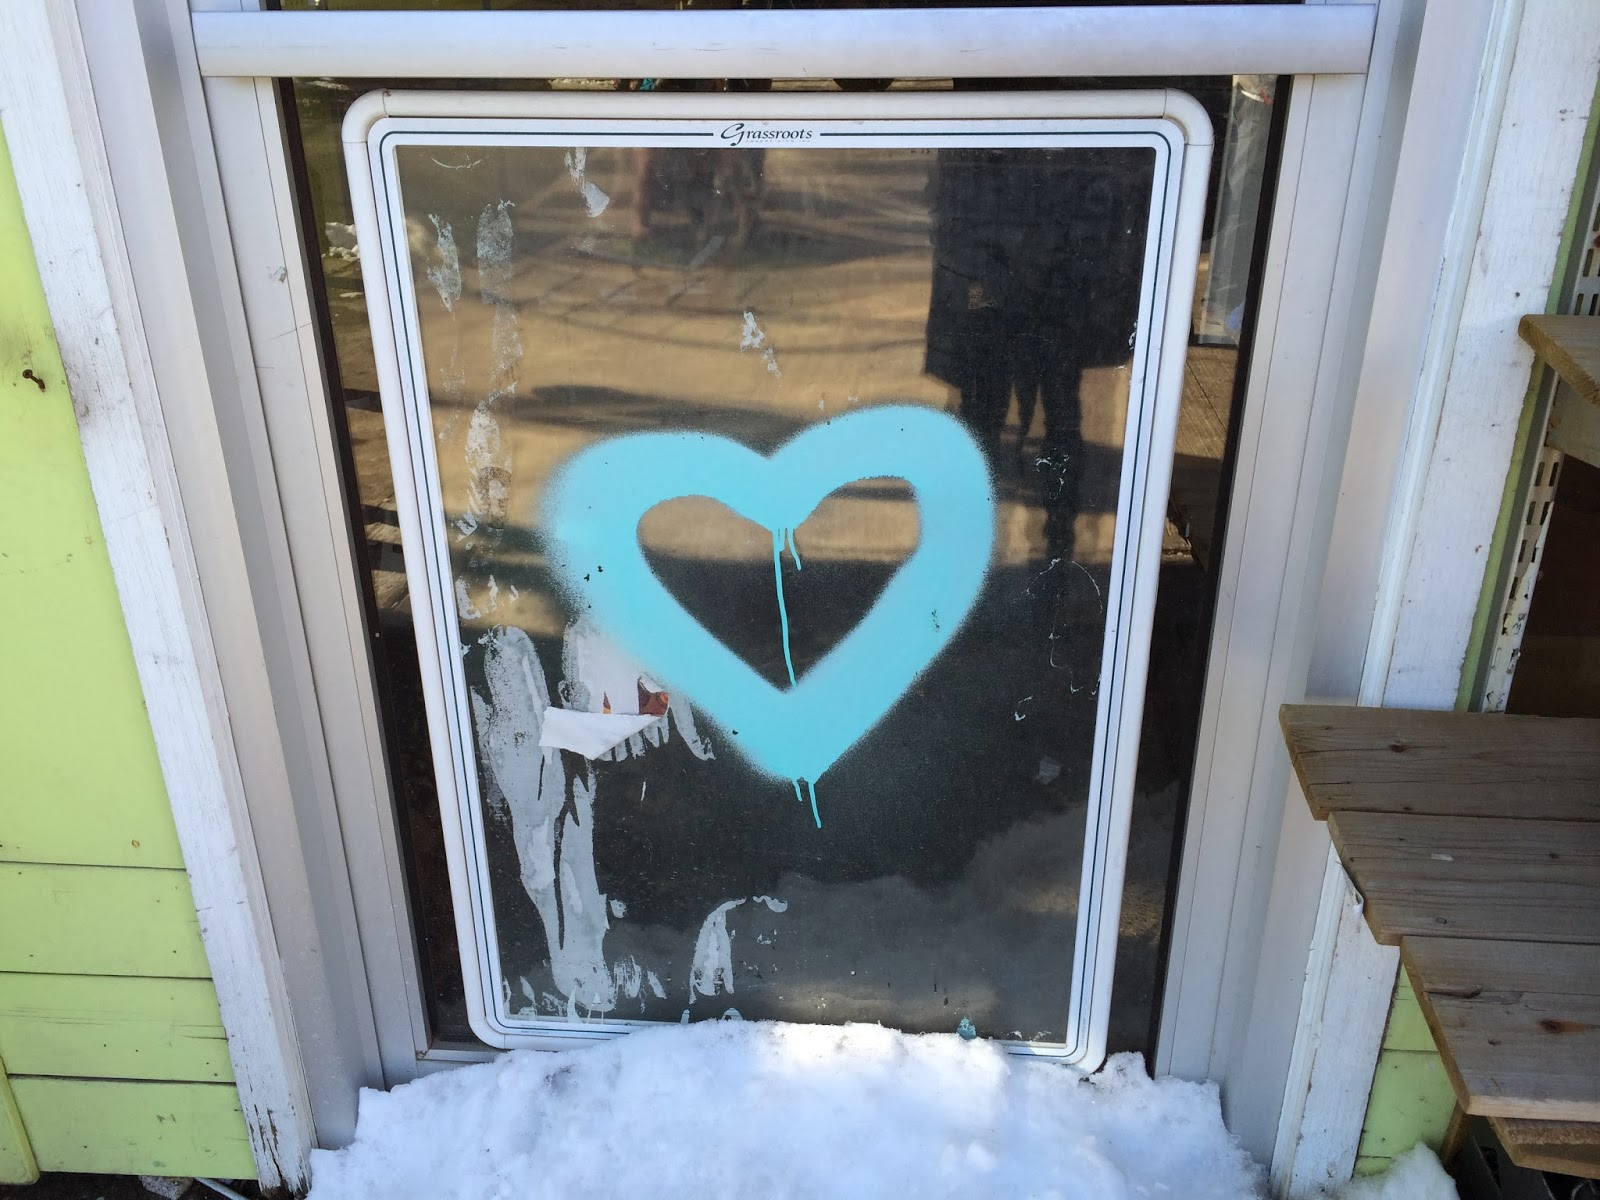 blue heart spray painted on a window